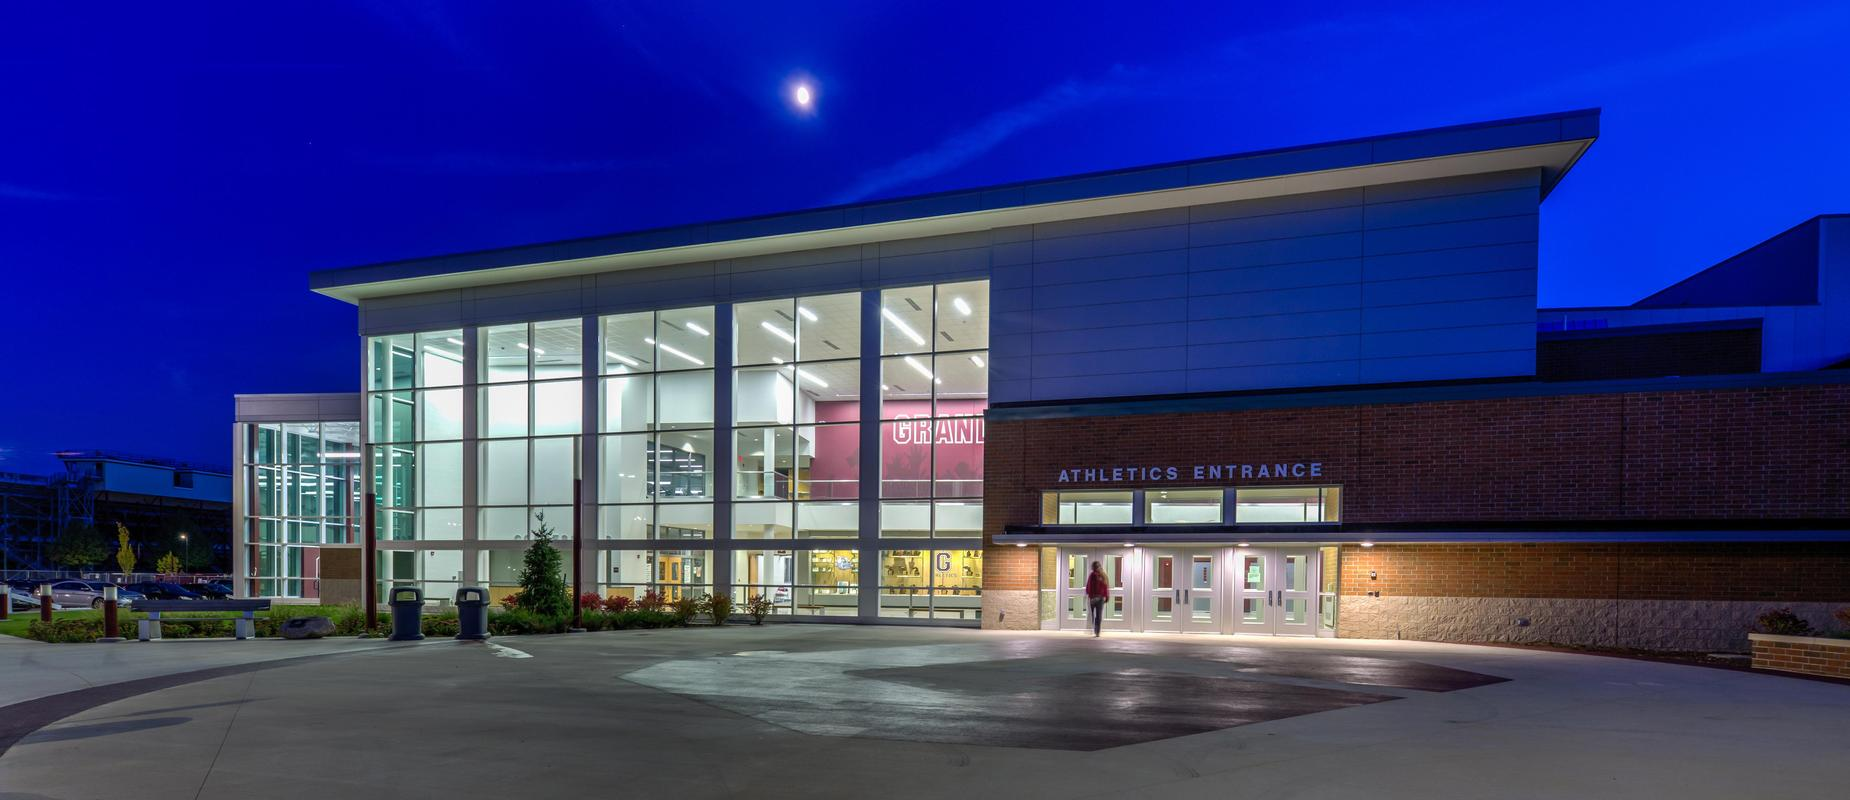 GHS athletic entrance at night